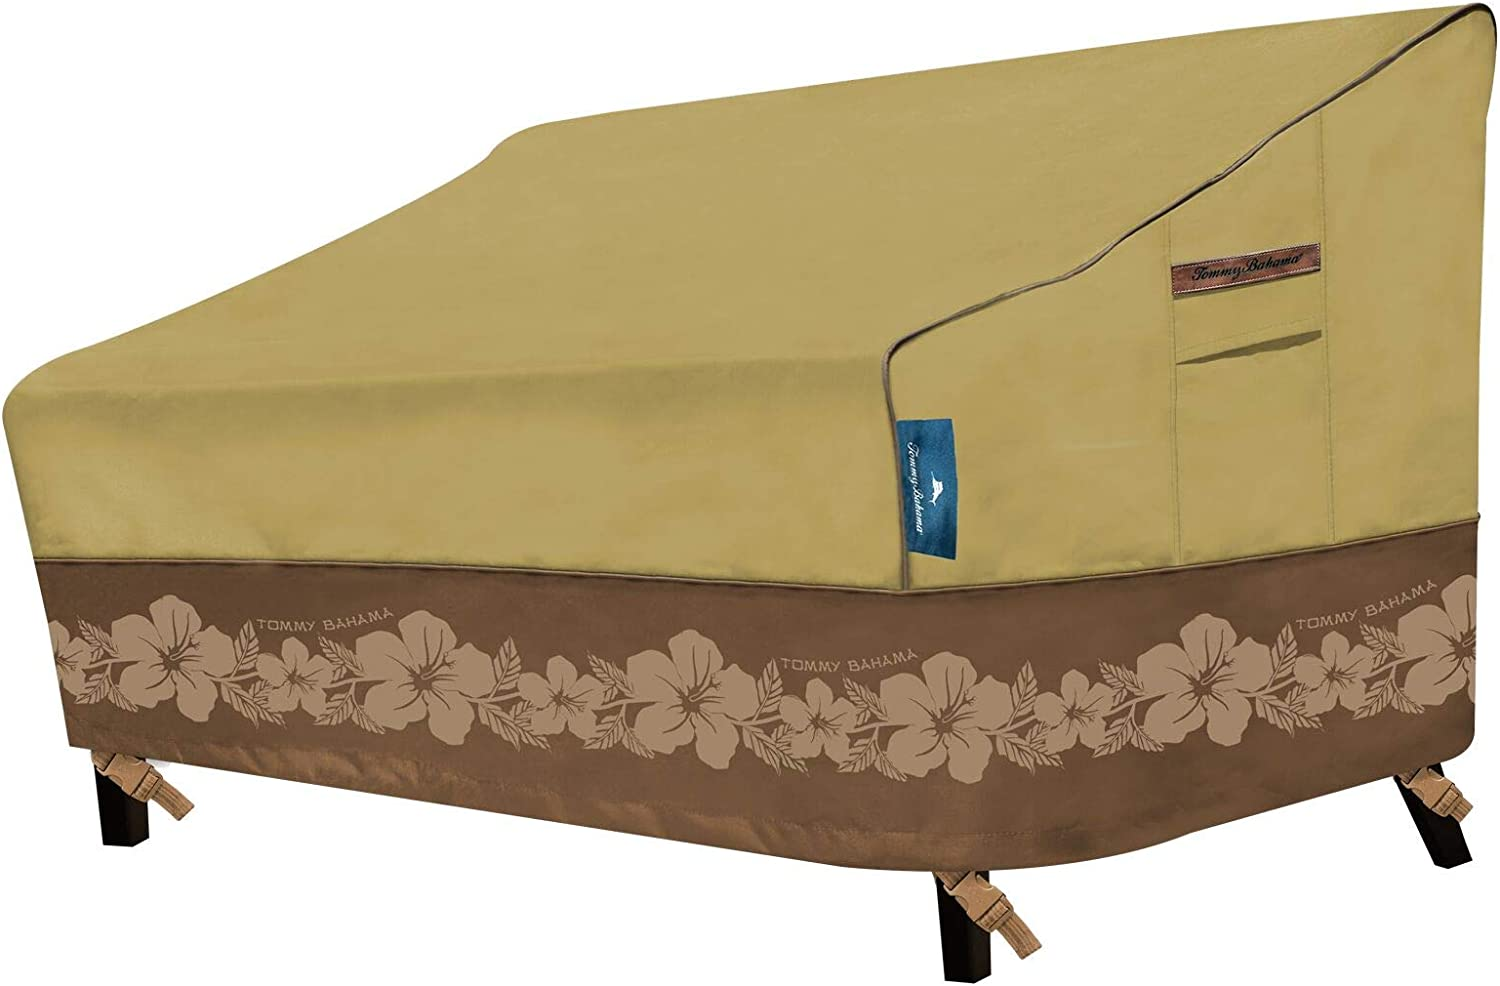 Tommy Bahama 29201 Medium 2-3 Cushion Patio Sofa Cover, Tan/Brown